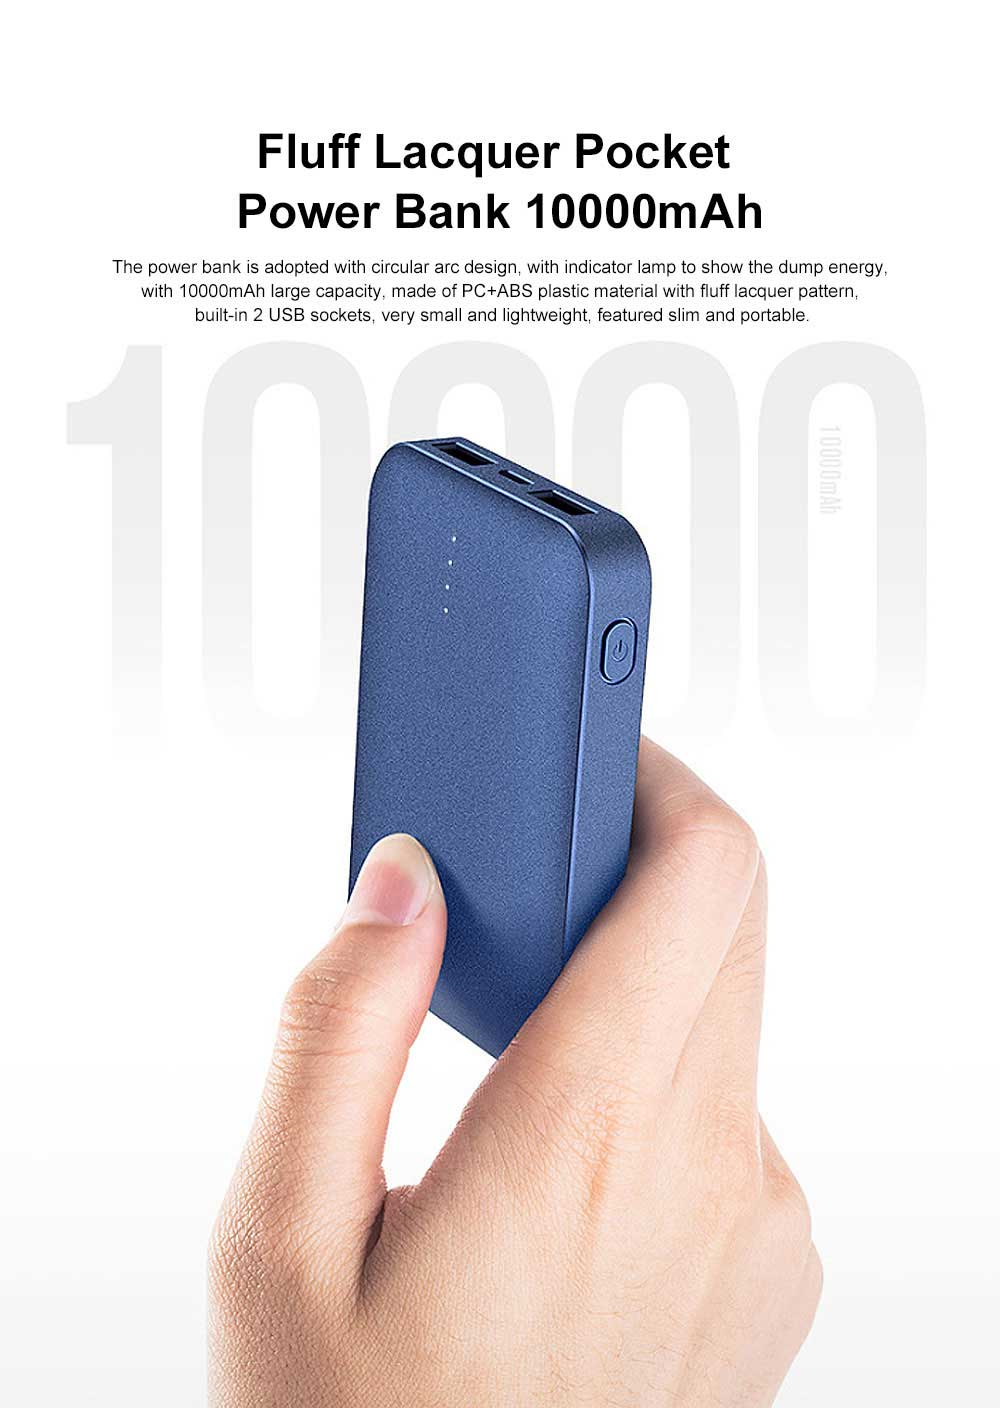 Portable Ultra Mini Business Fluff Lacquer Pocket External Battery ABS Charger Dual USB Power Bank for Cell Phone 10000mAh 0